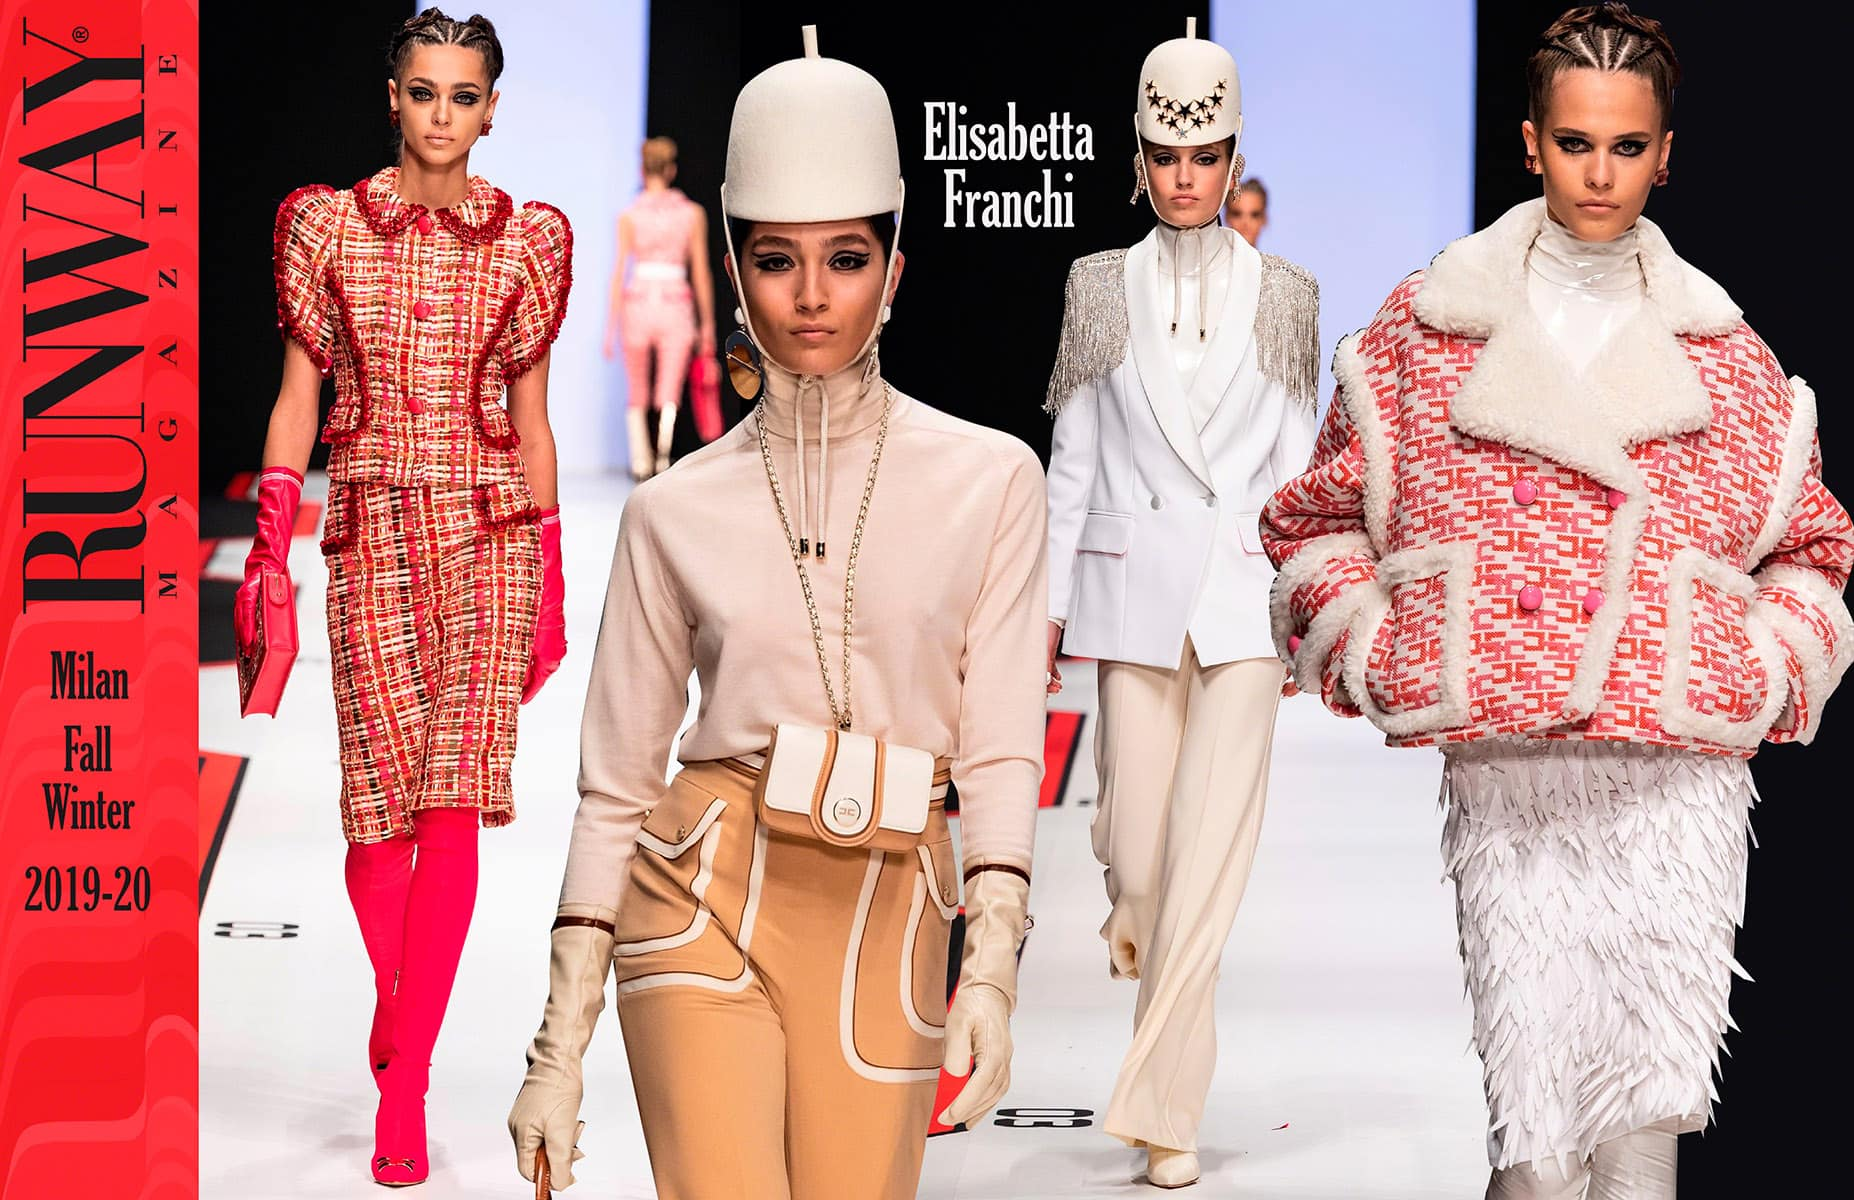 Elisabetta Franchi Fall-Winter 2019-2020 Milan by RUNWAY MAGAZINE